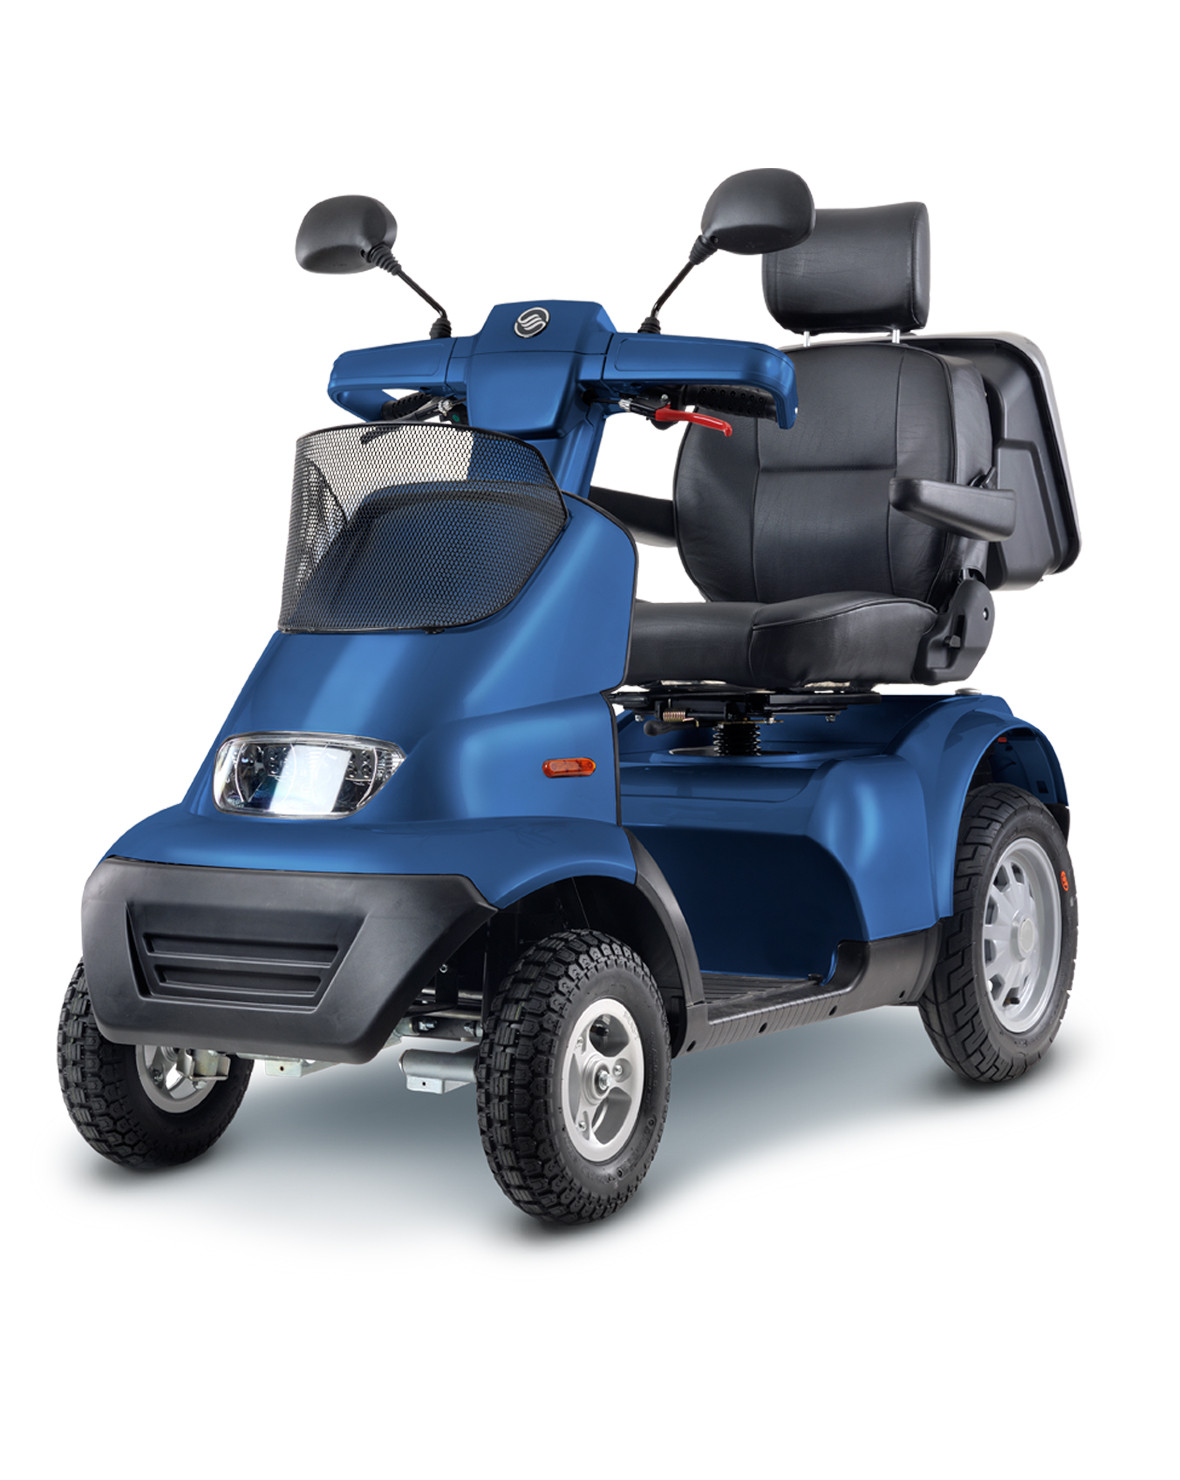 AFISCOOTER S 4-Wheel - Blue